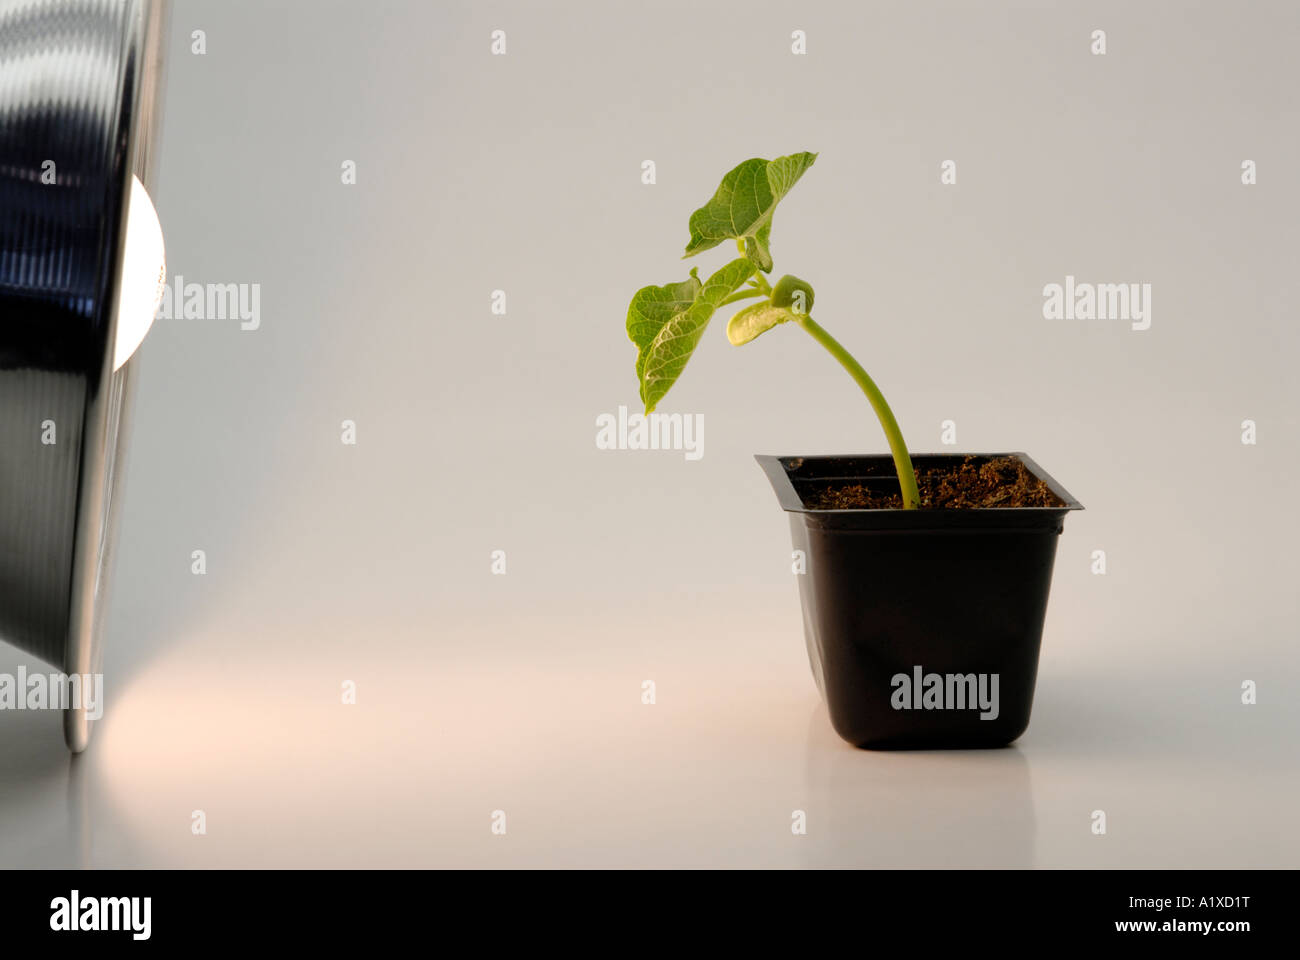 Bean seedling bends towards light source - phototropism - Stock Image